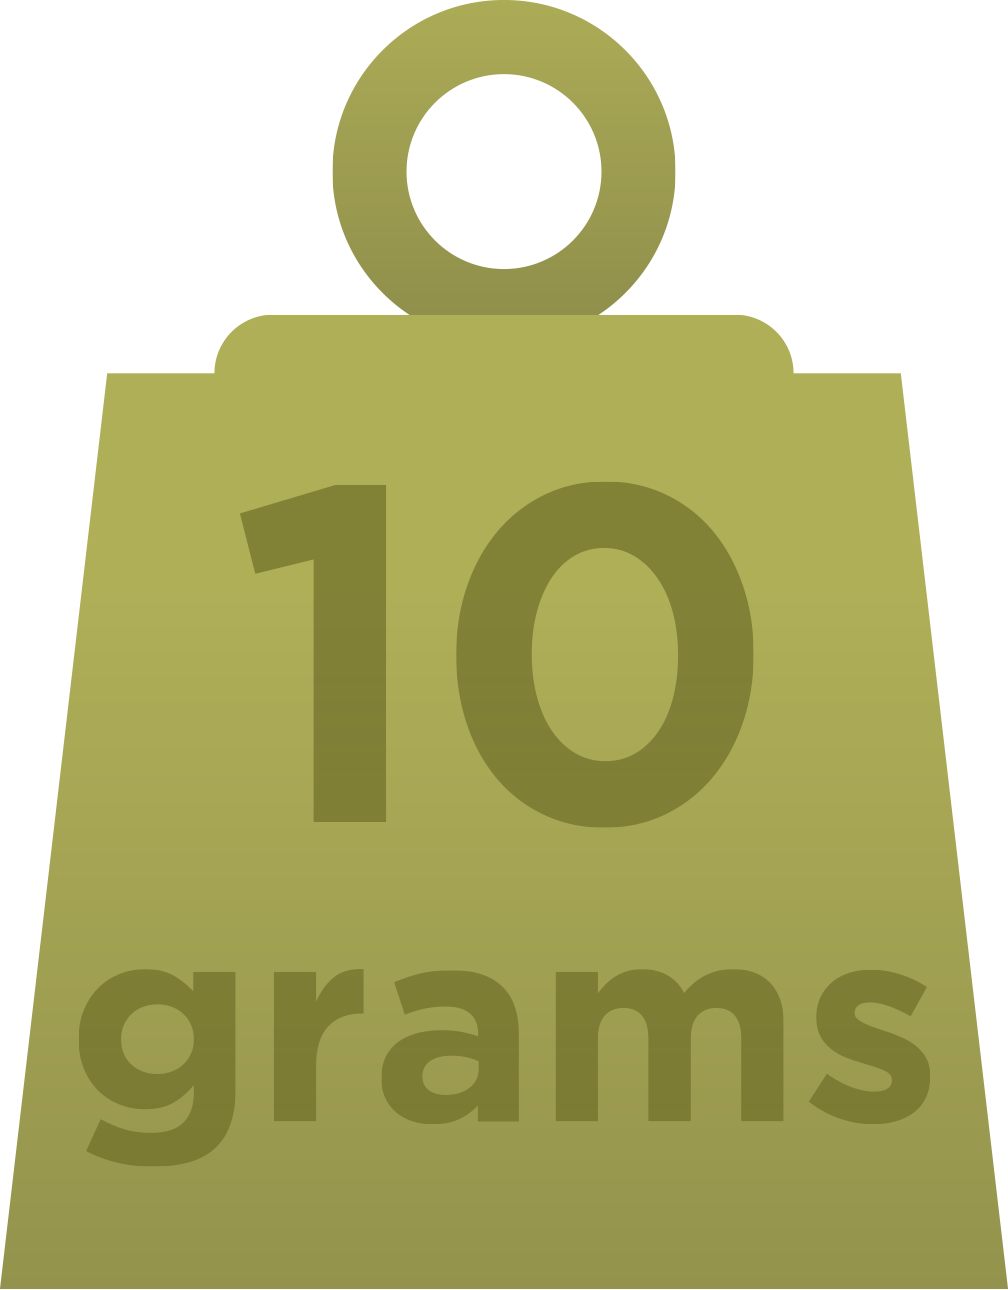 Weight clipart gram. View grams png free